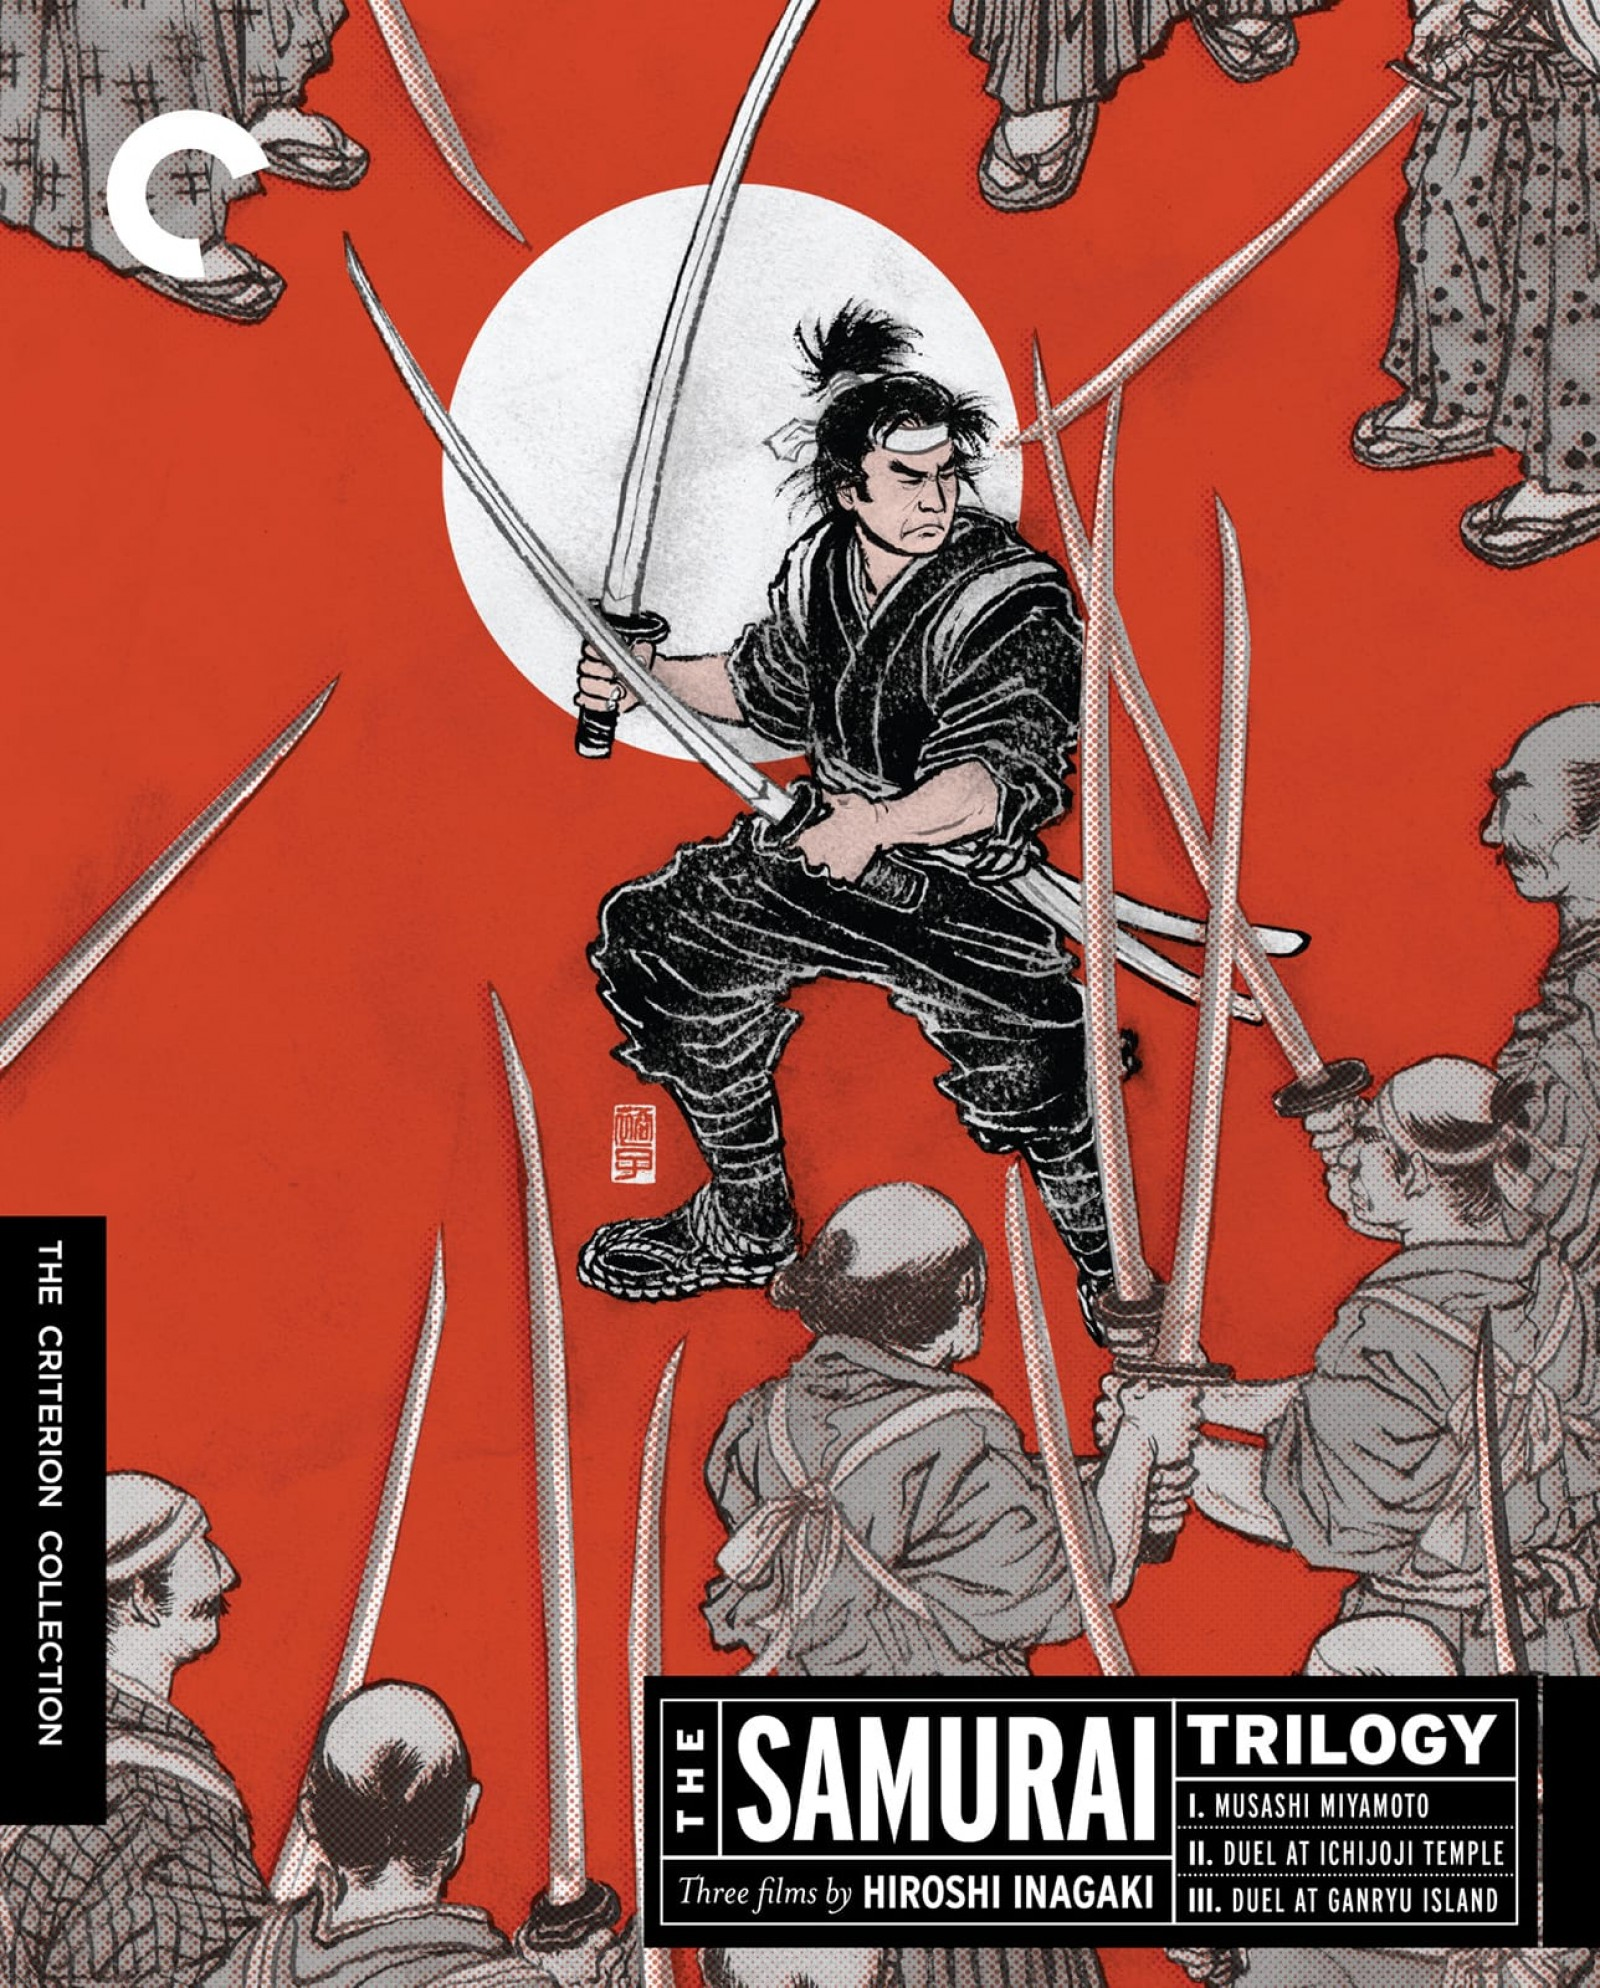 Image result for samurai i criterion dvd